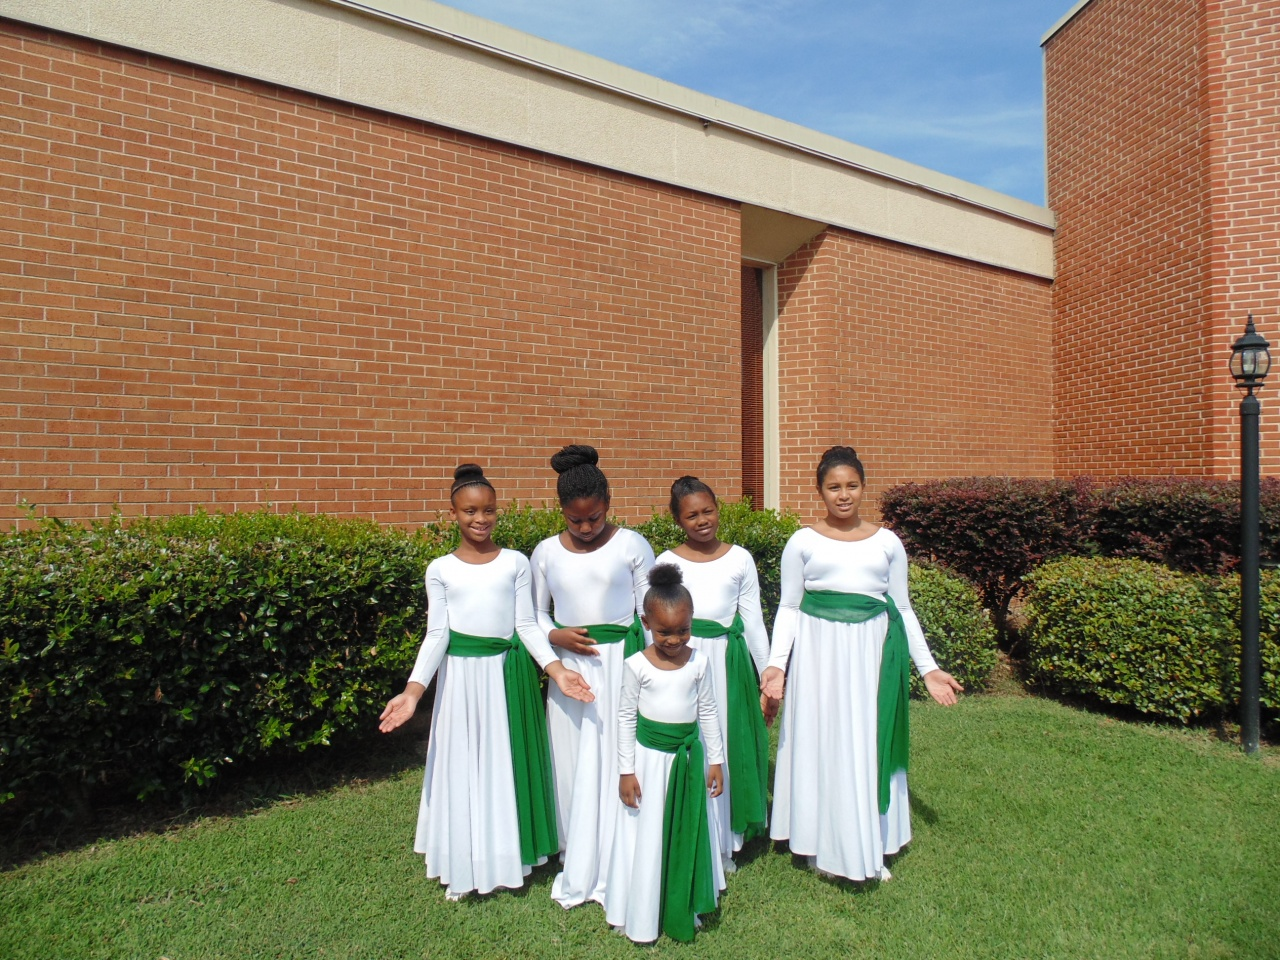 Liturgical Dance with Mrs. Louise Purdue